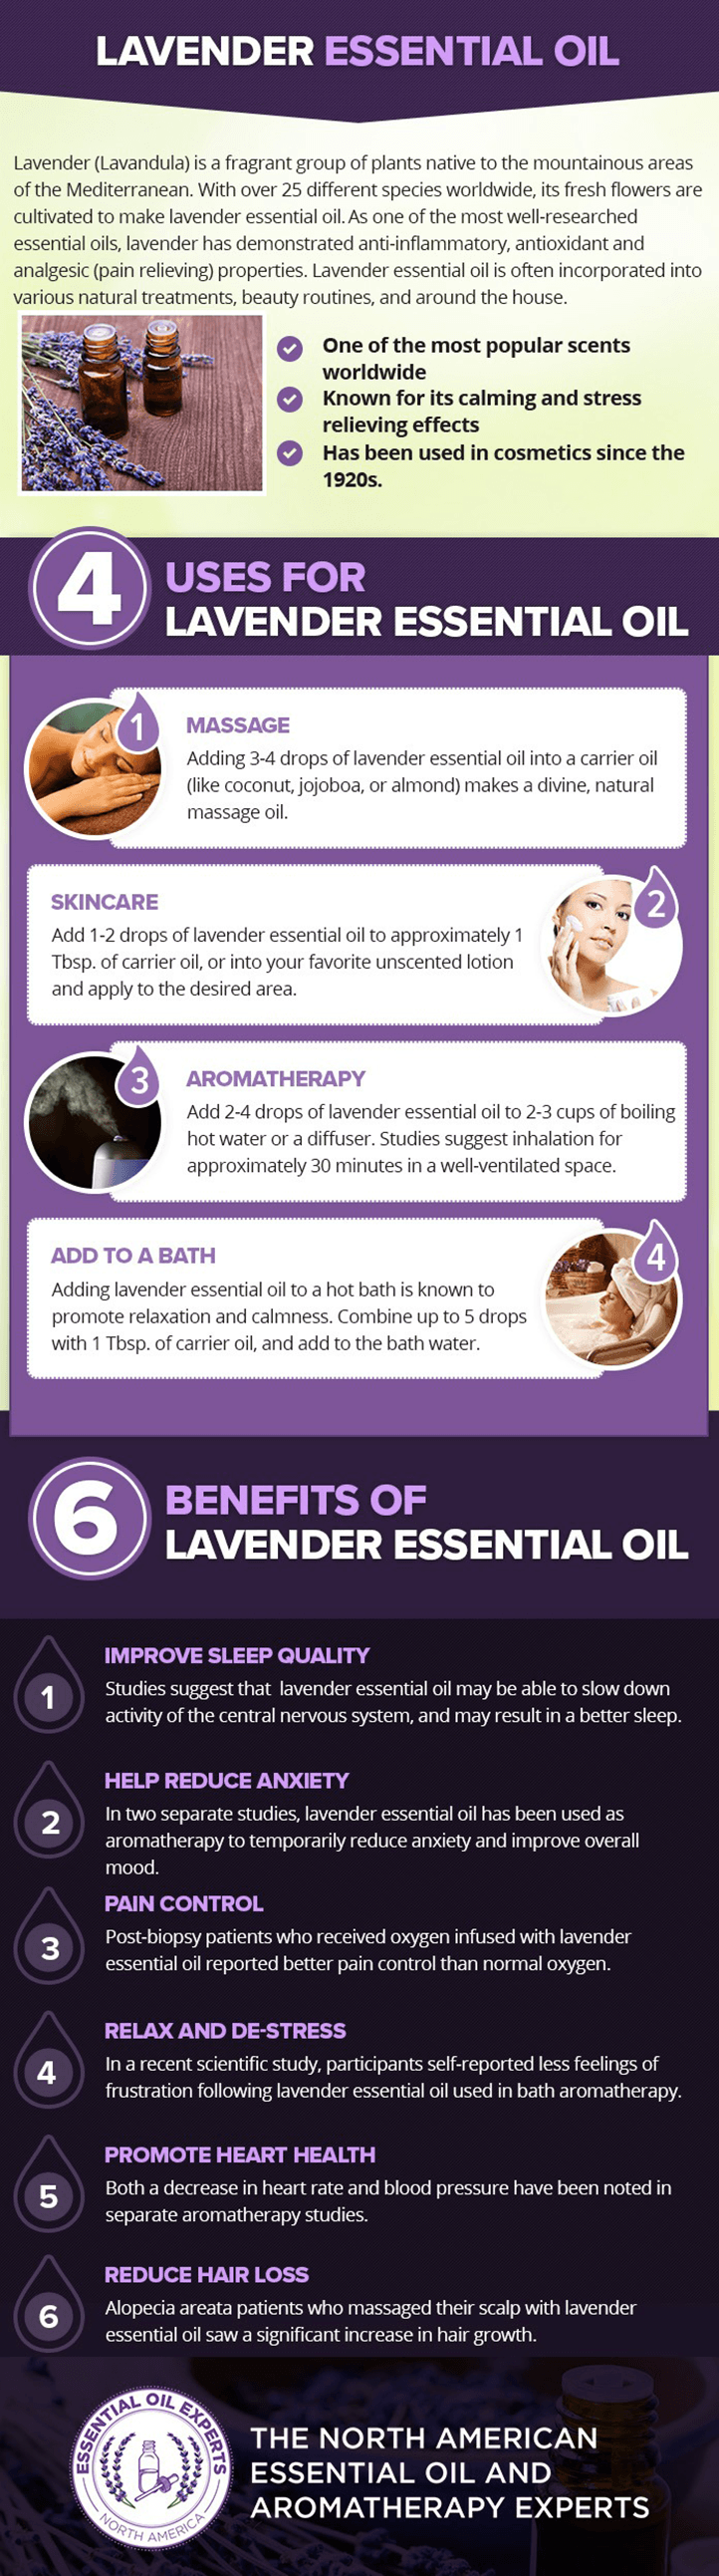 Lavender Infographic